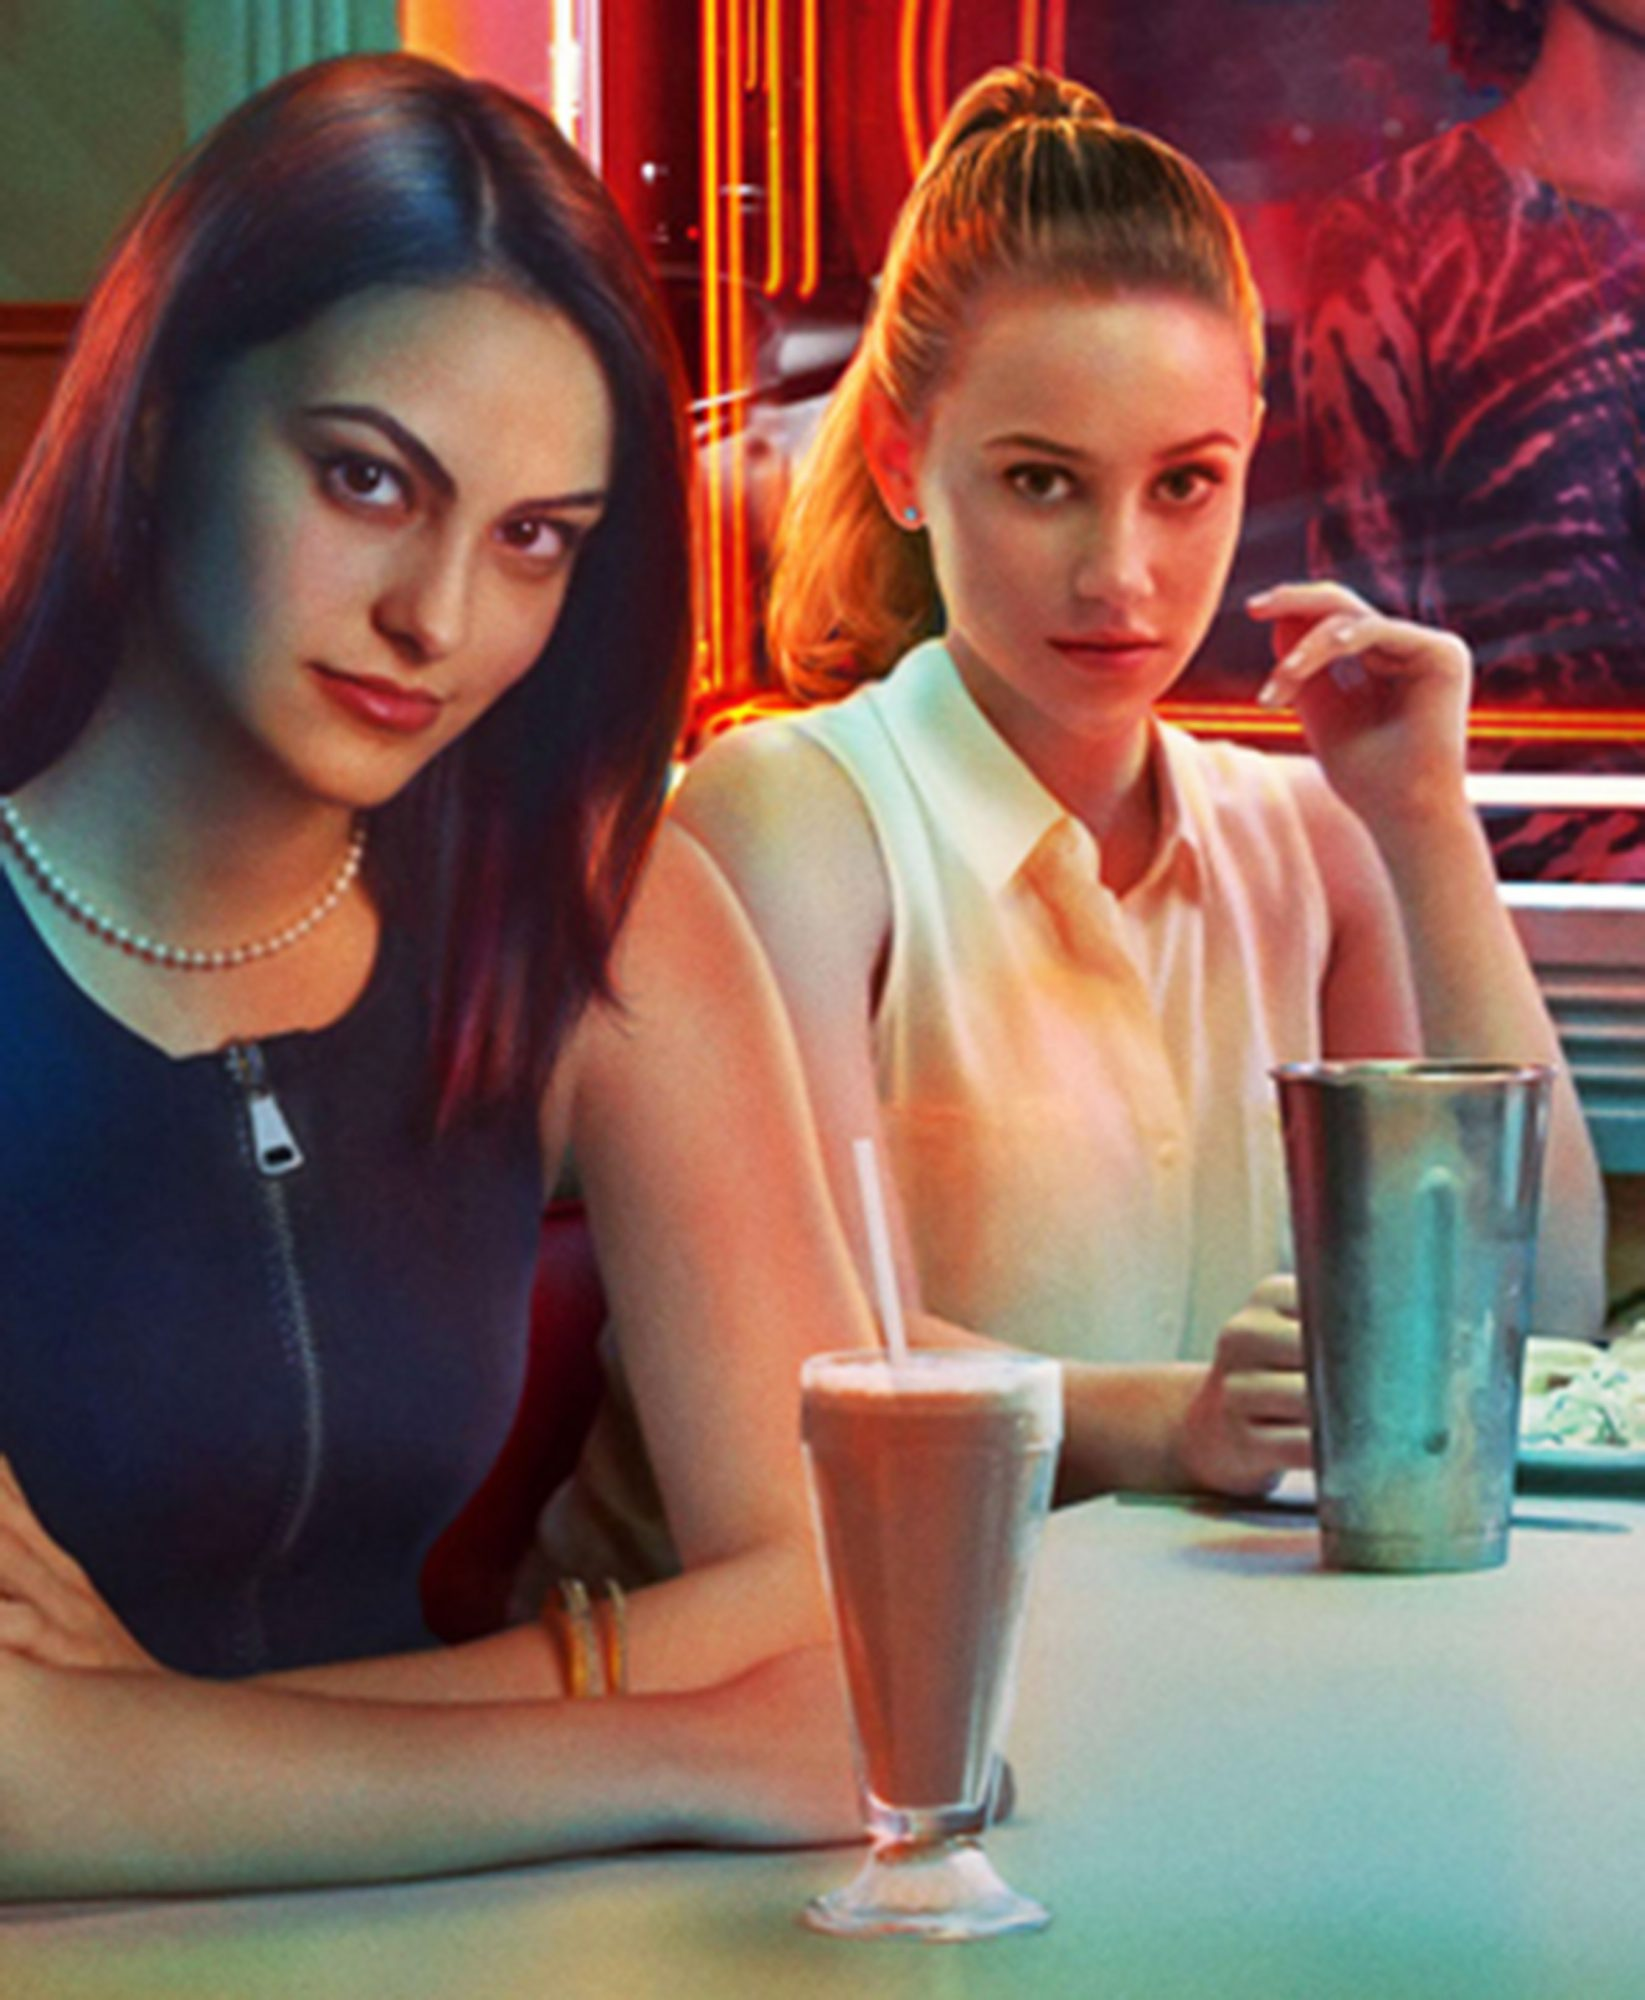 Betty and Veronica (Riverdale)